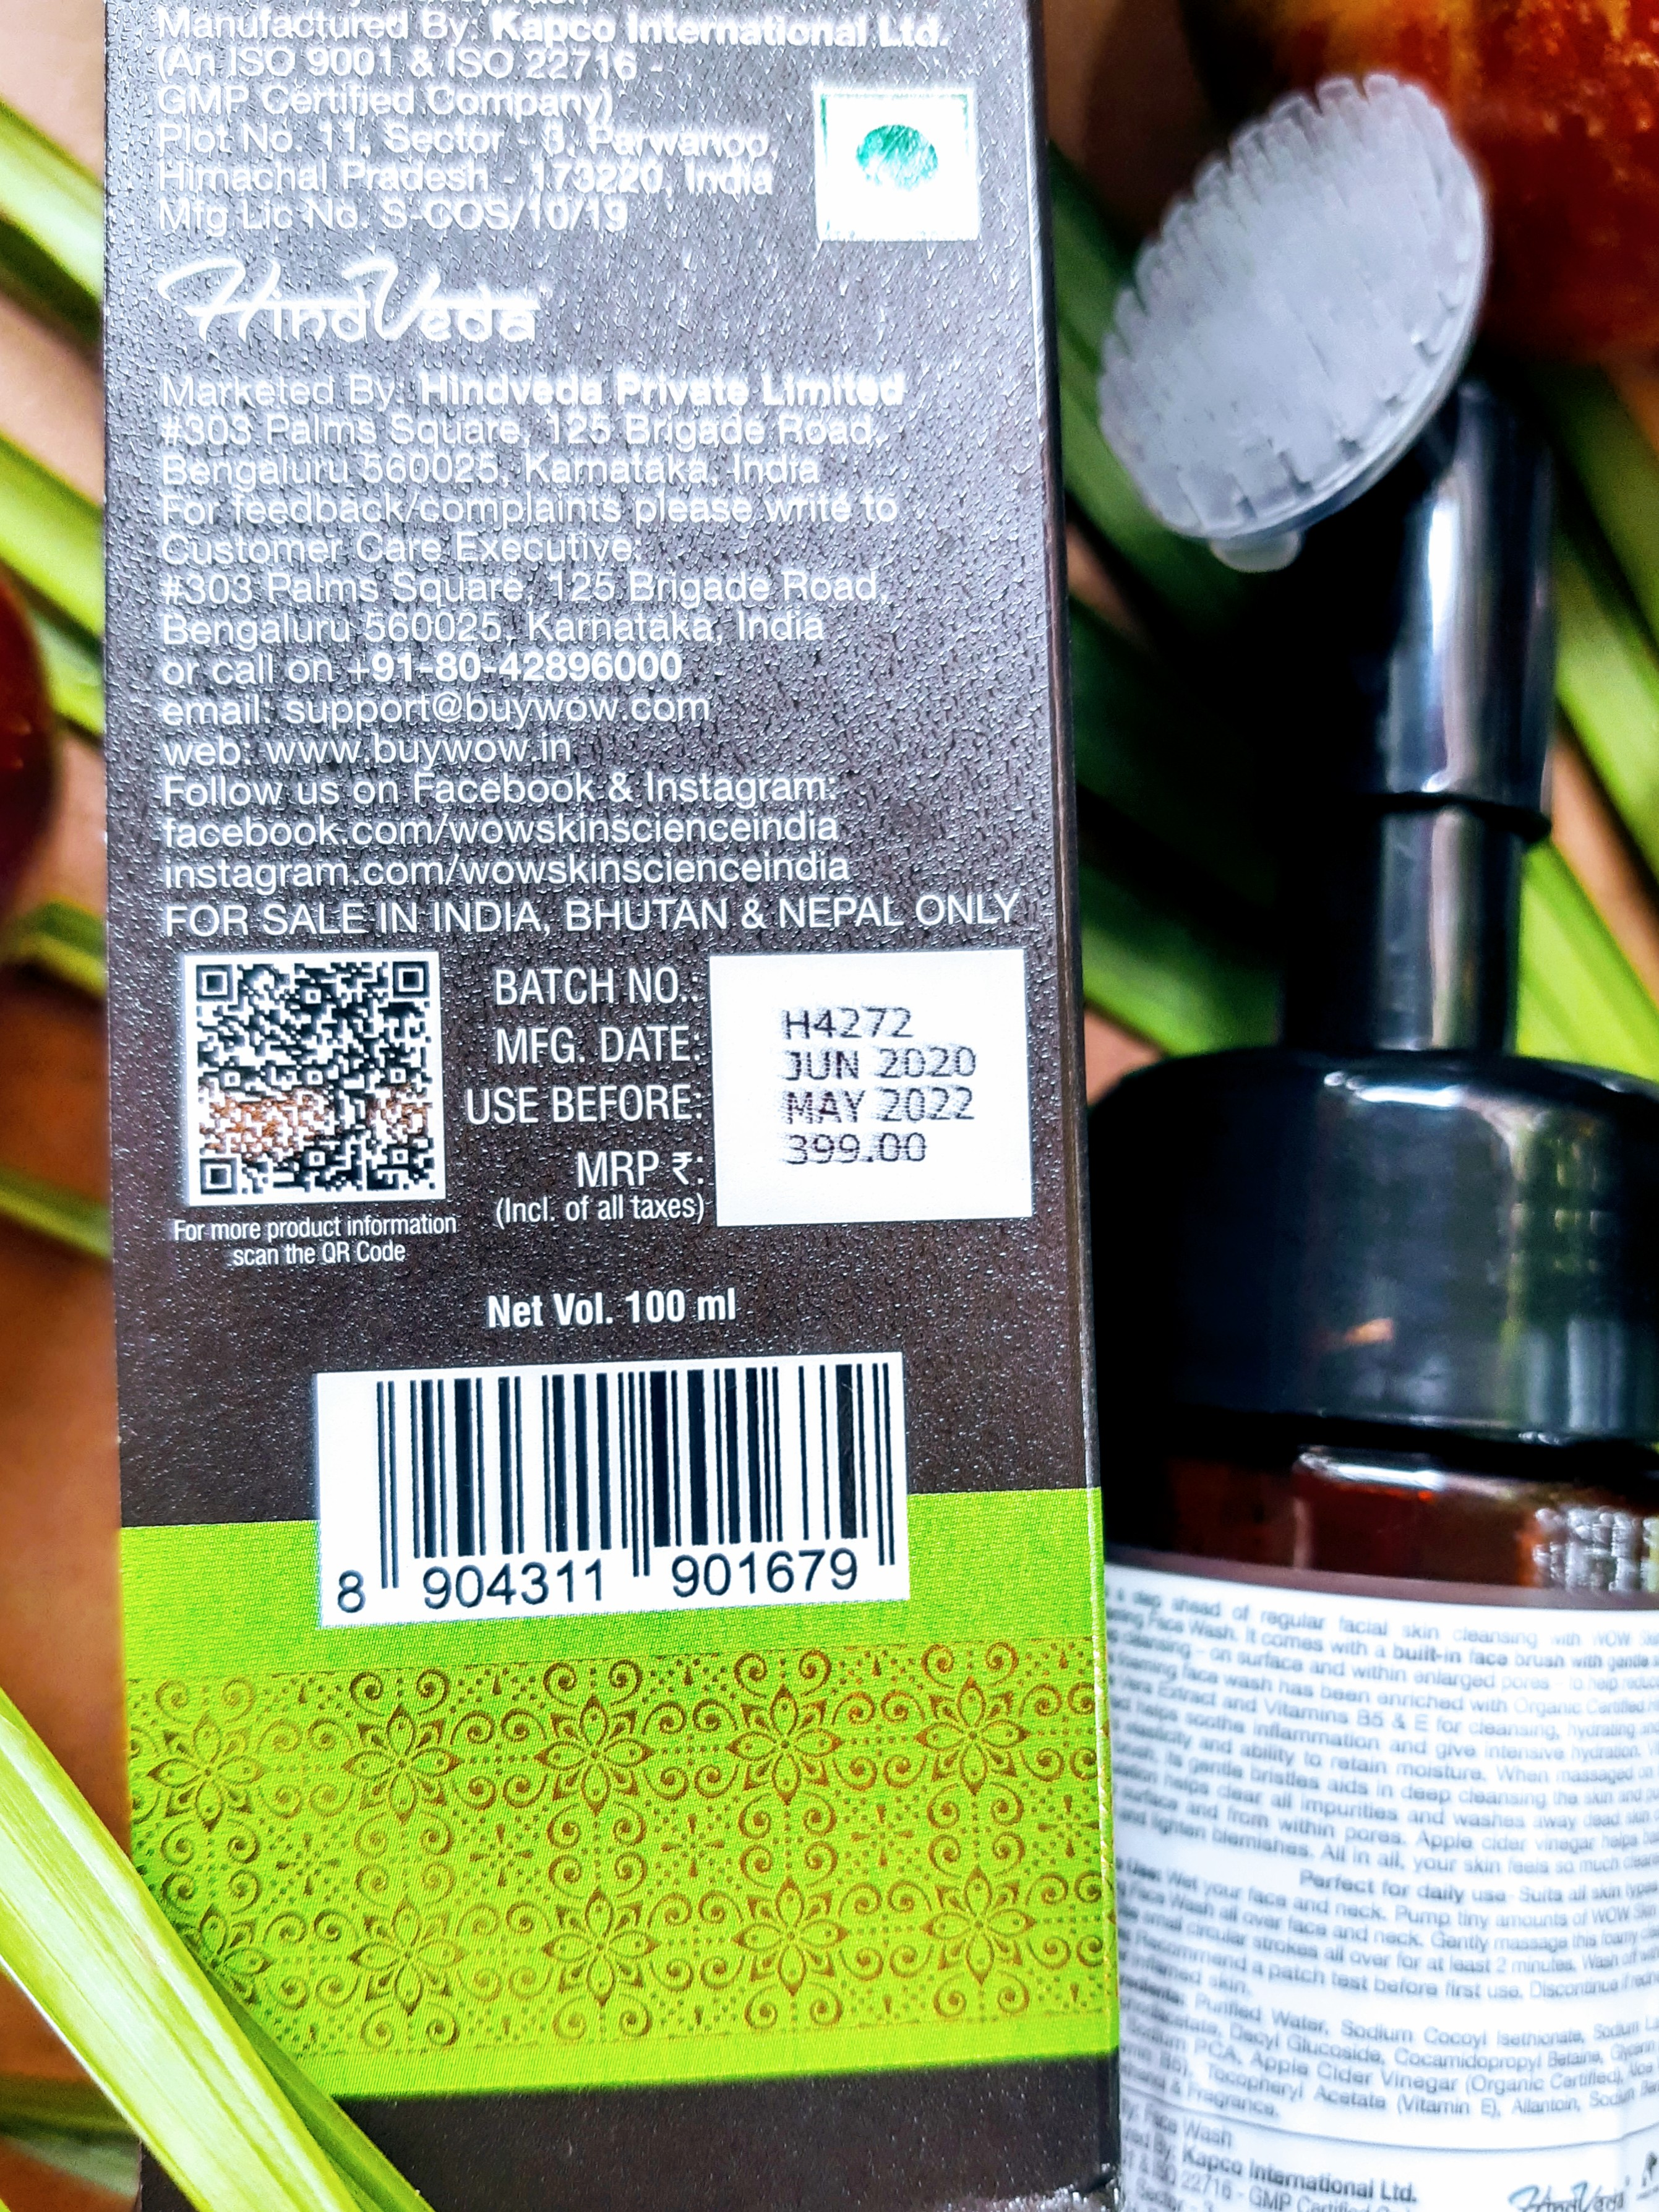 price of WOW Apple Cider Vinegar Foaming Face Wash with the built-in brush